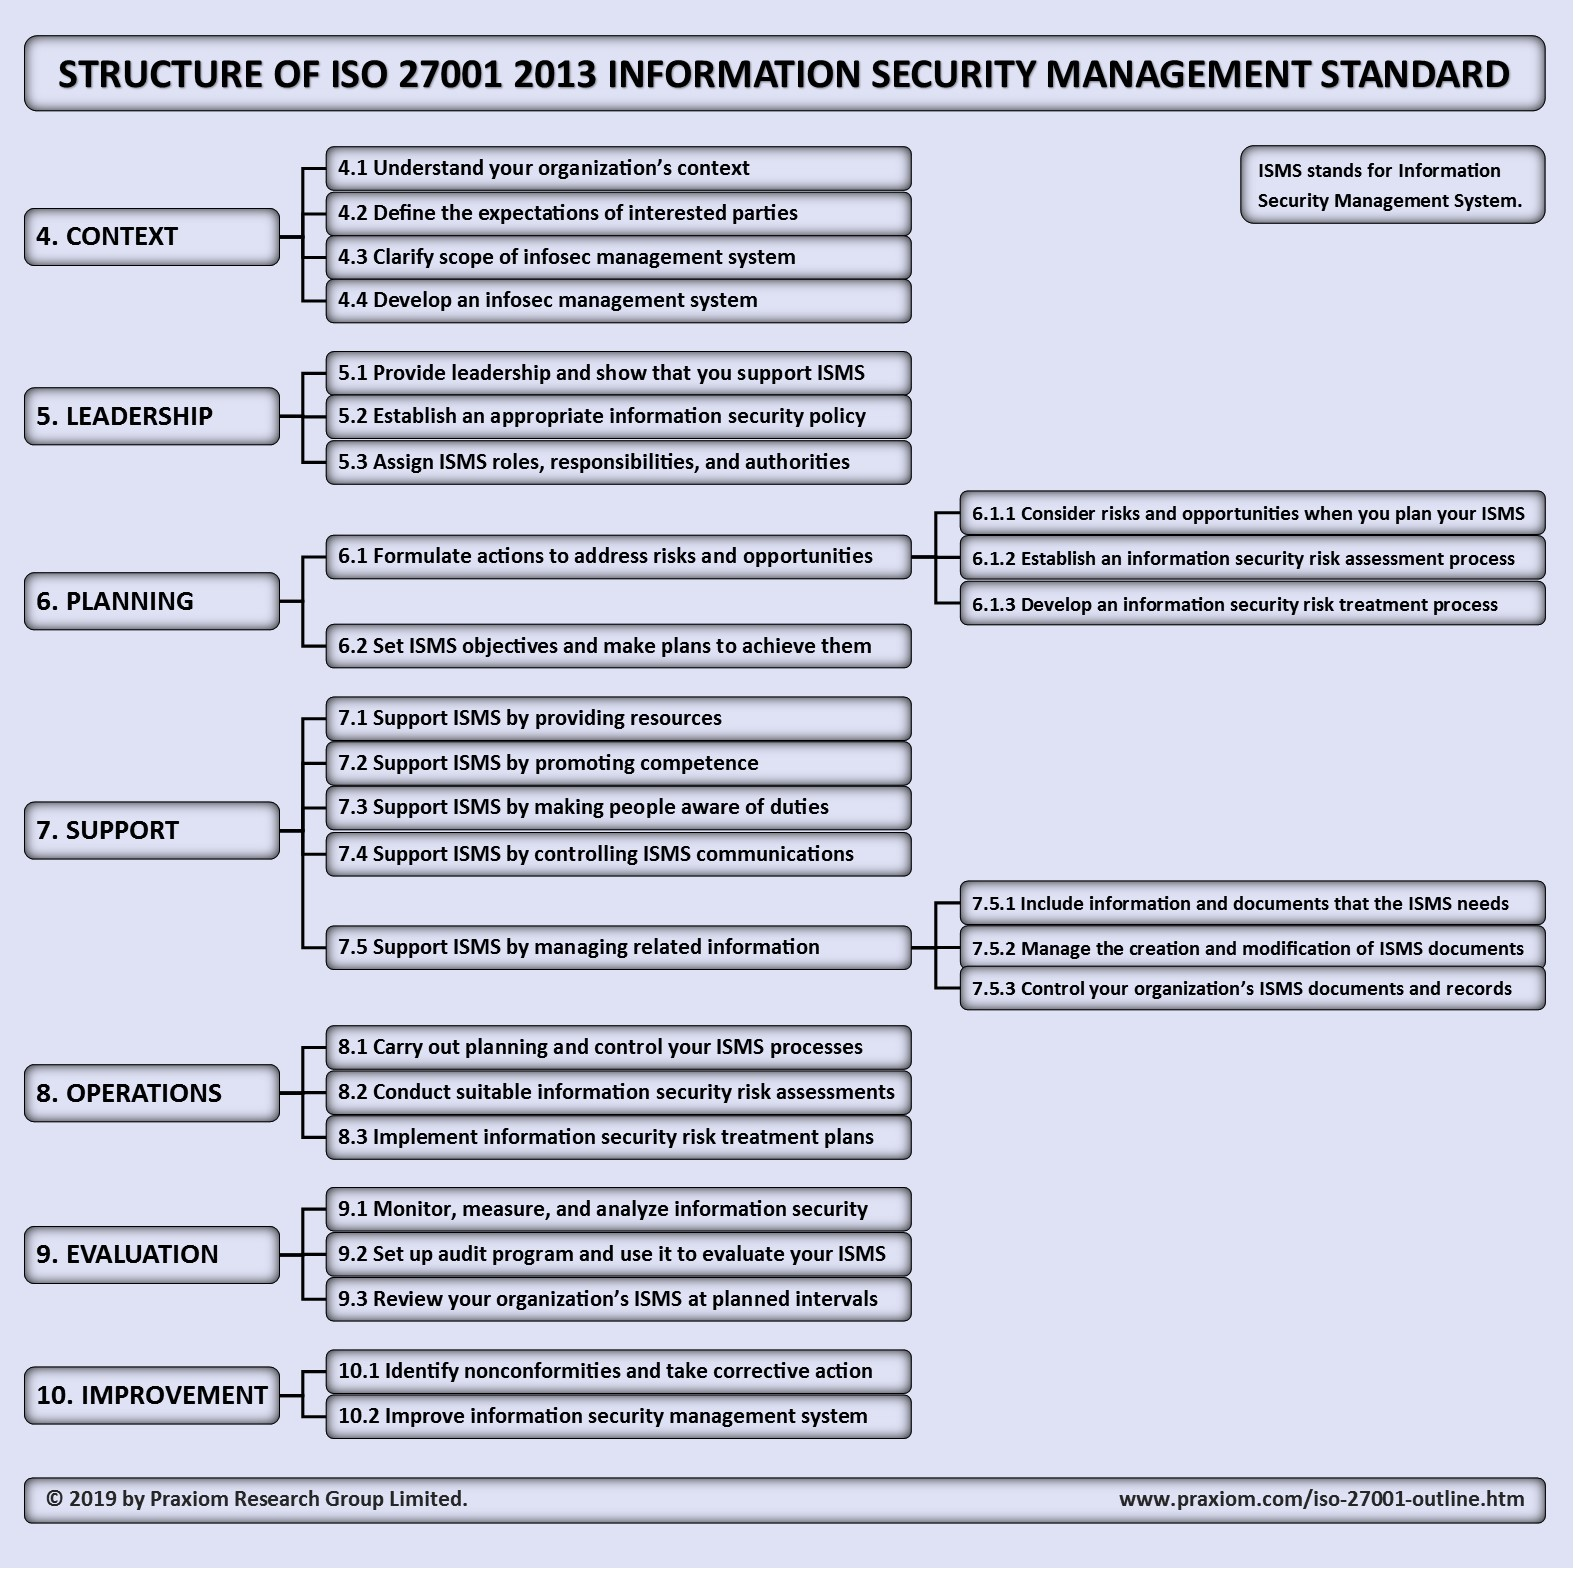 ISO 27001 Information Security Management Standard